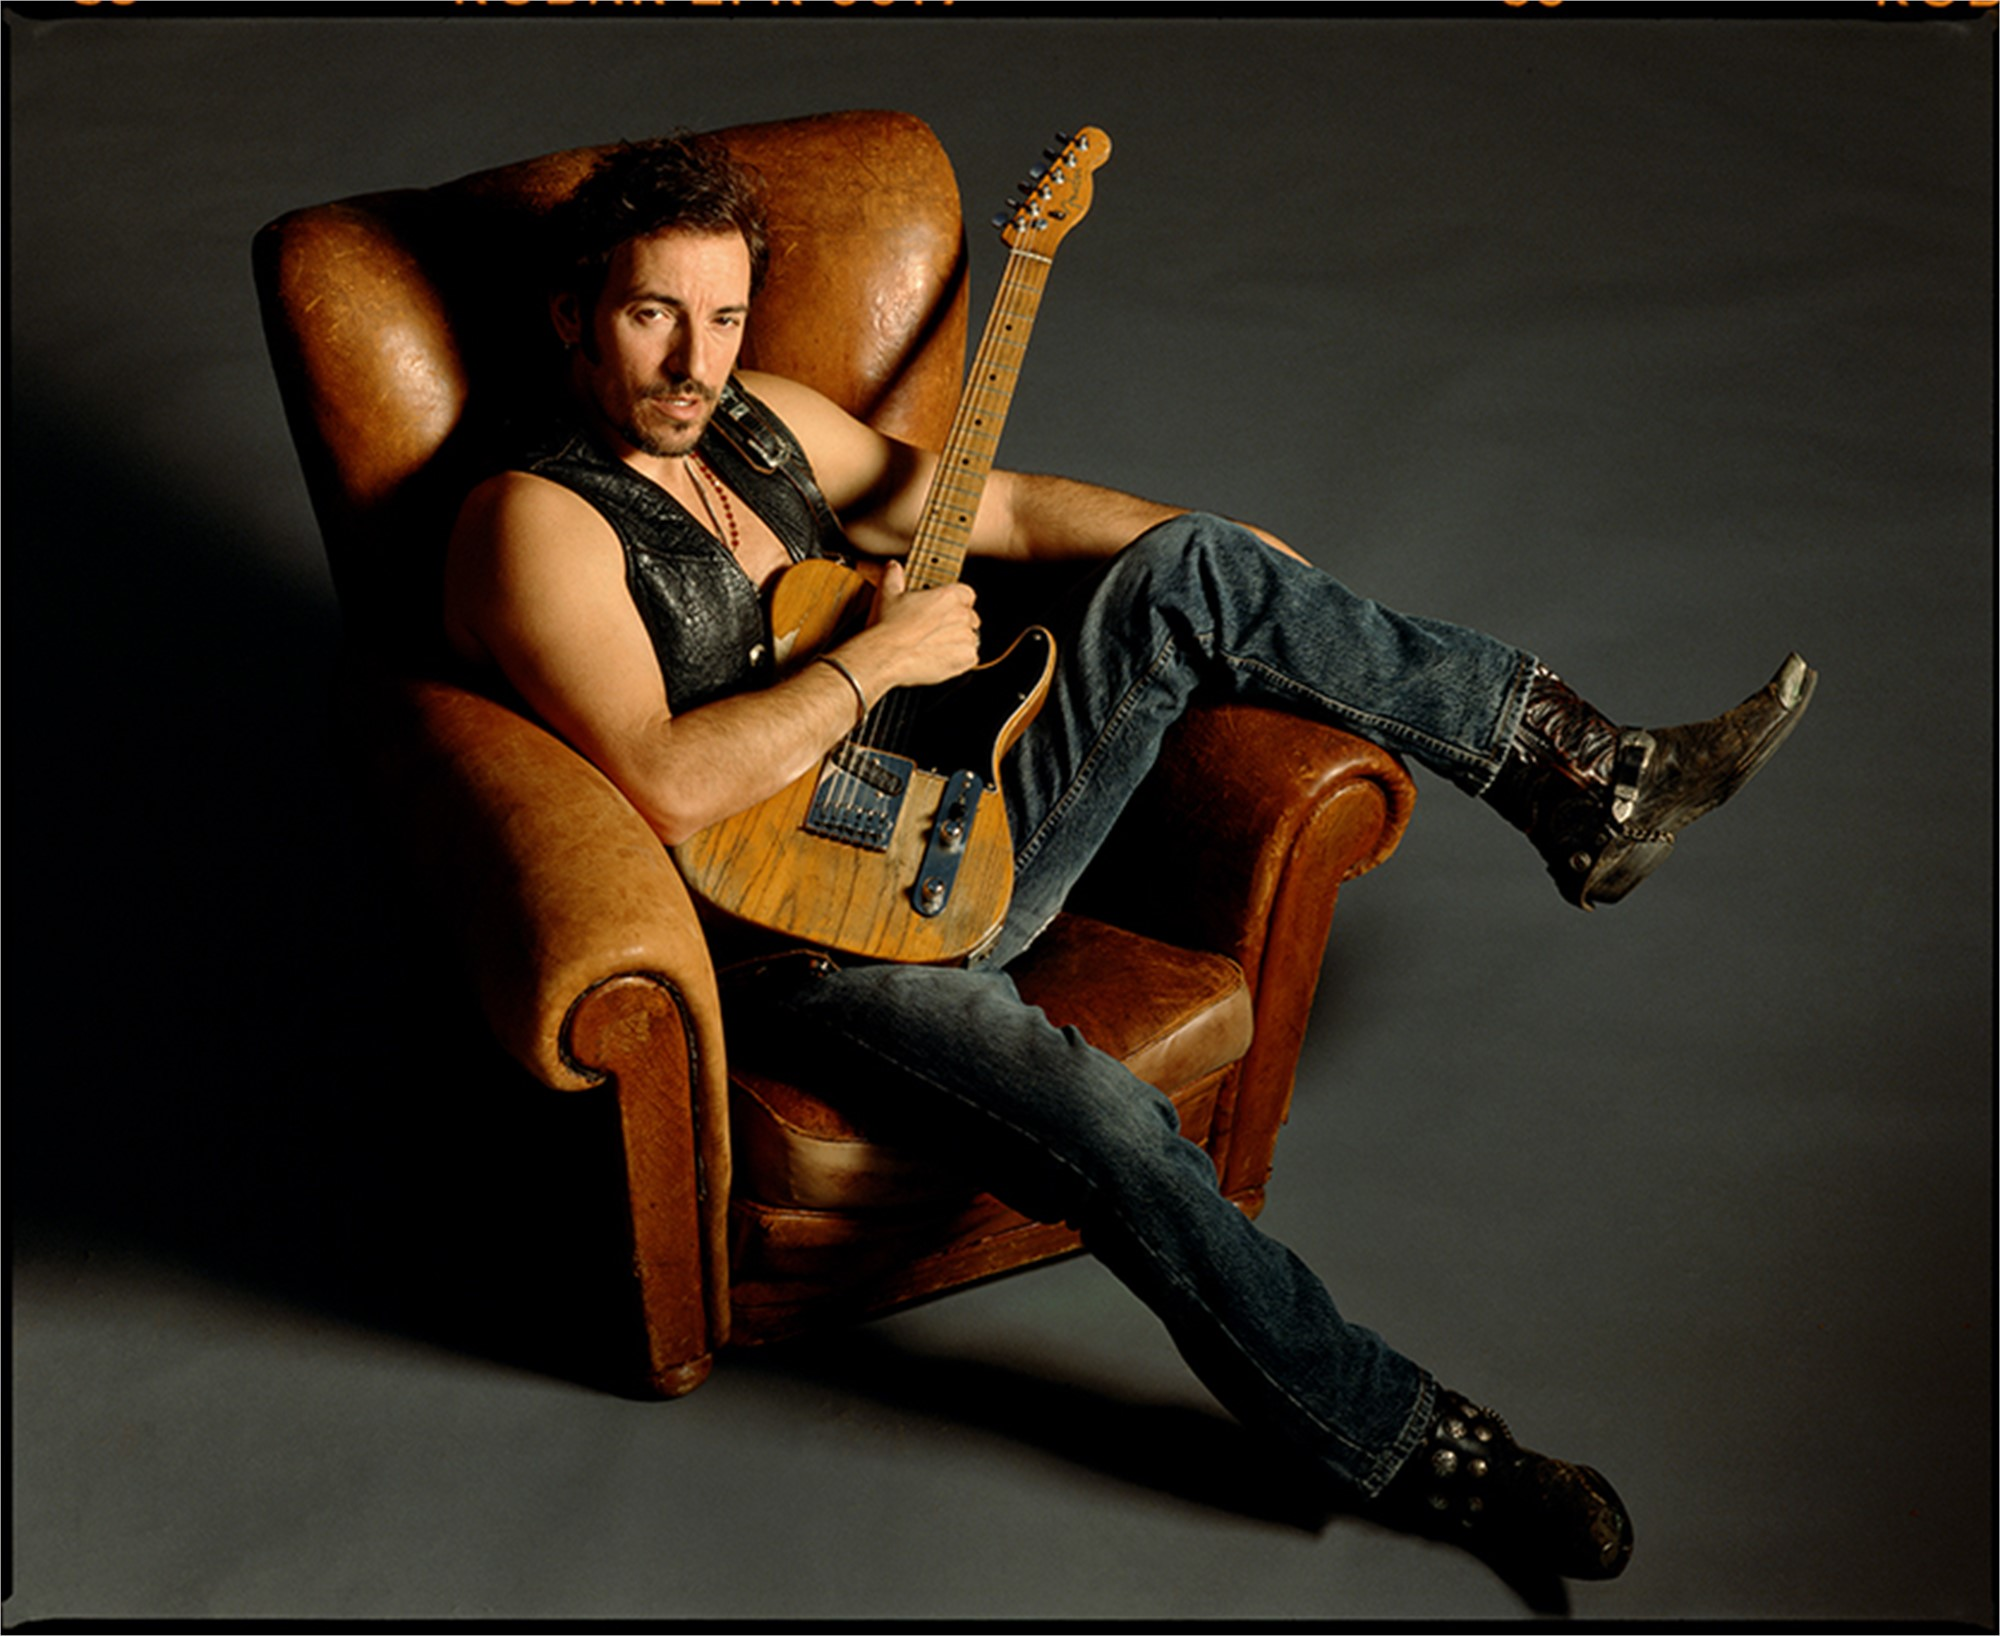 91152 Bruce Springsteen In Chair 1 Color by Timothy White